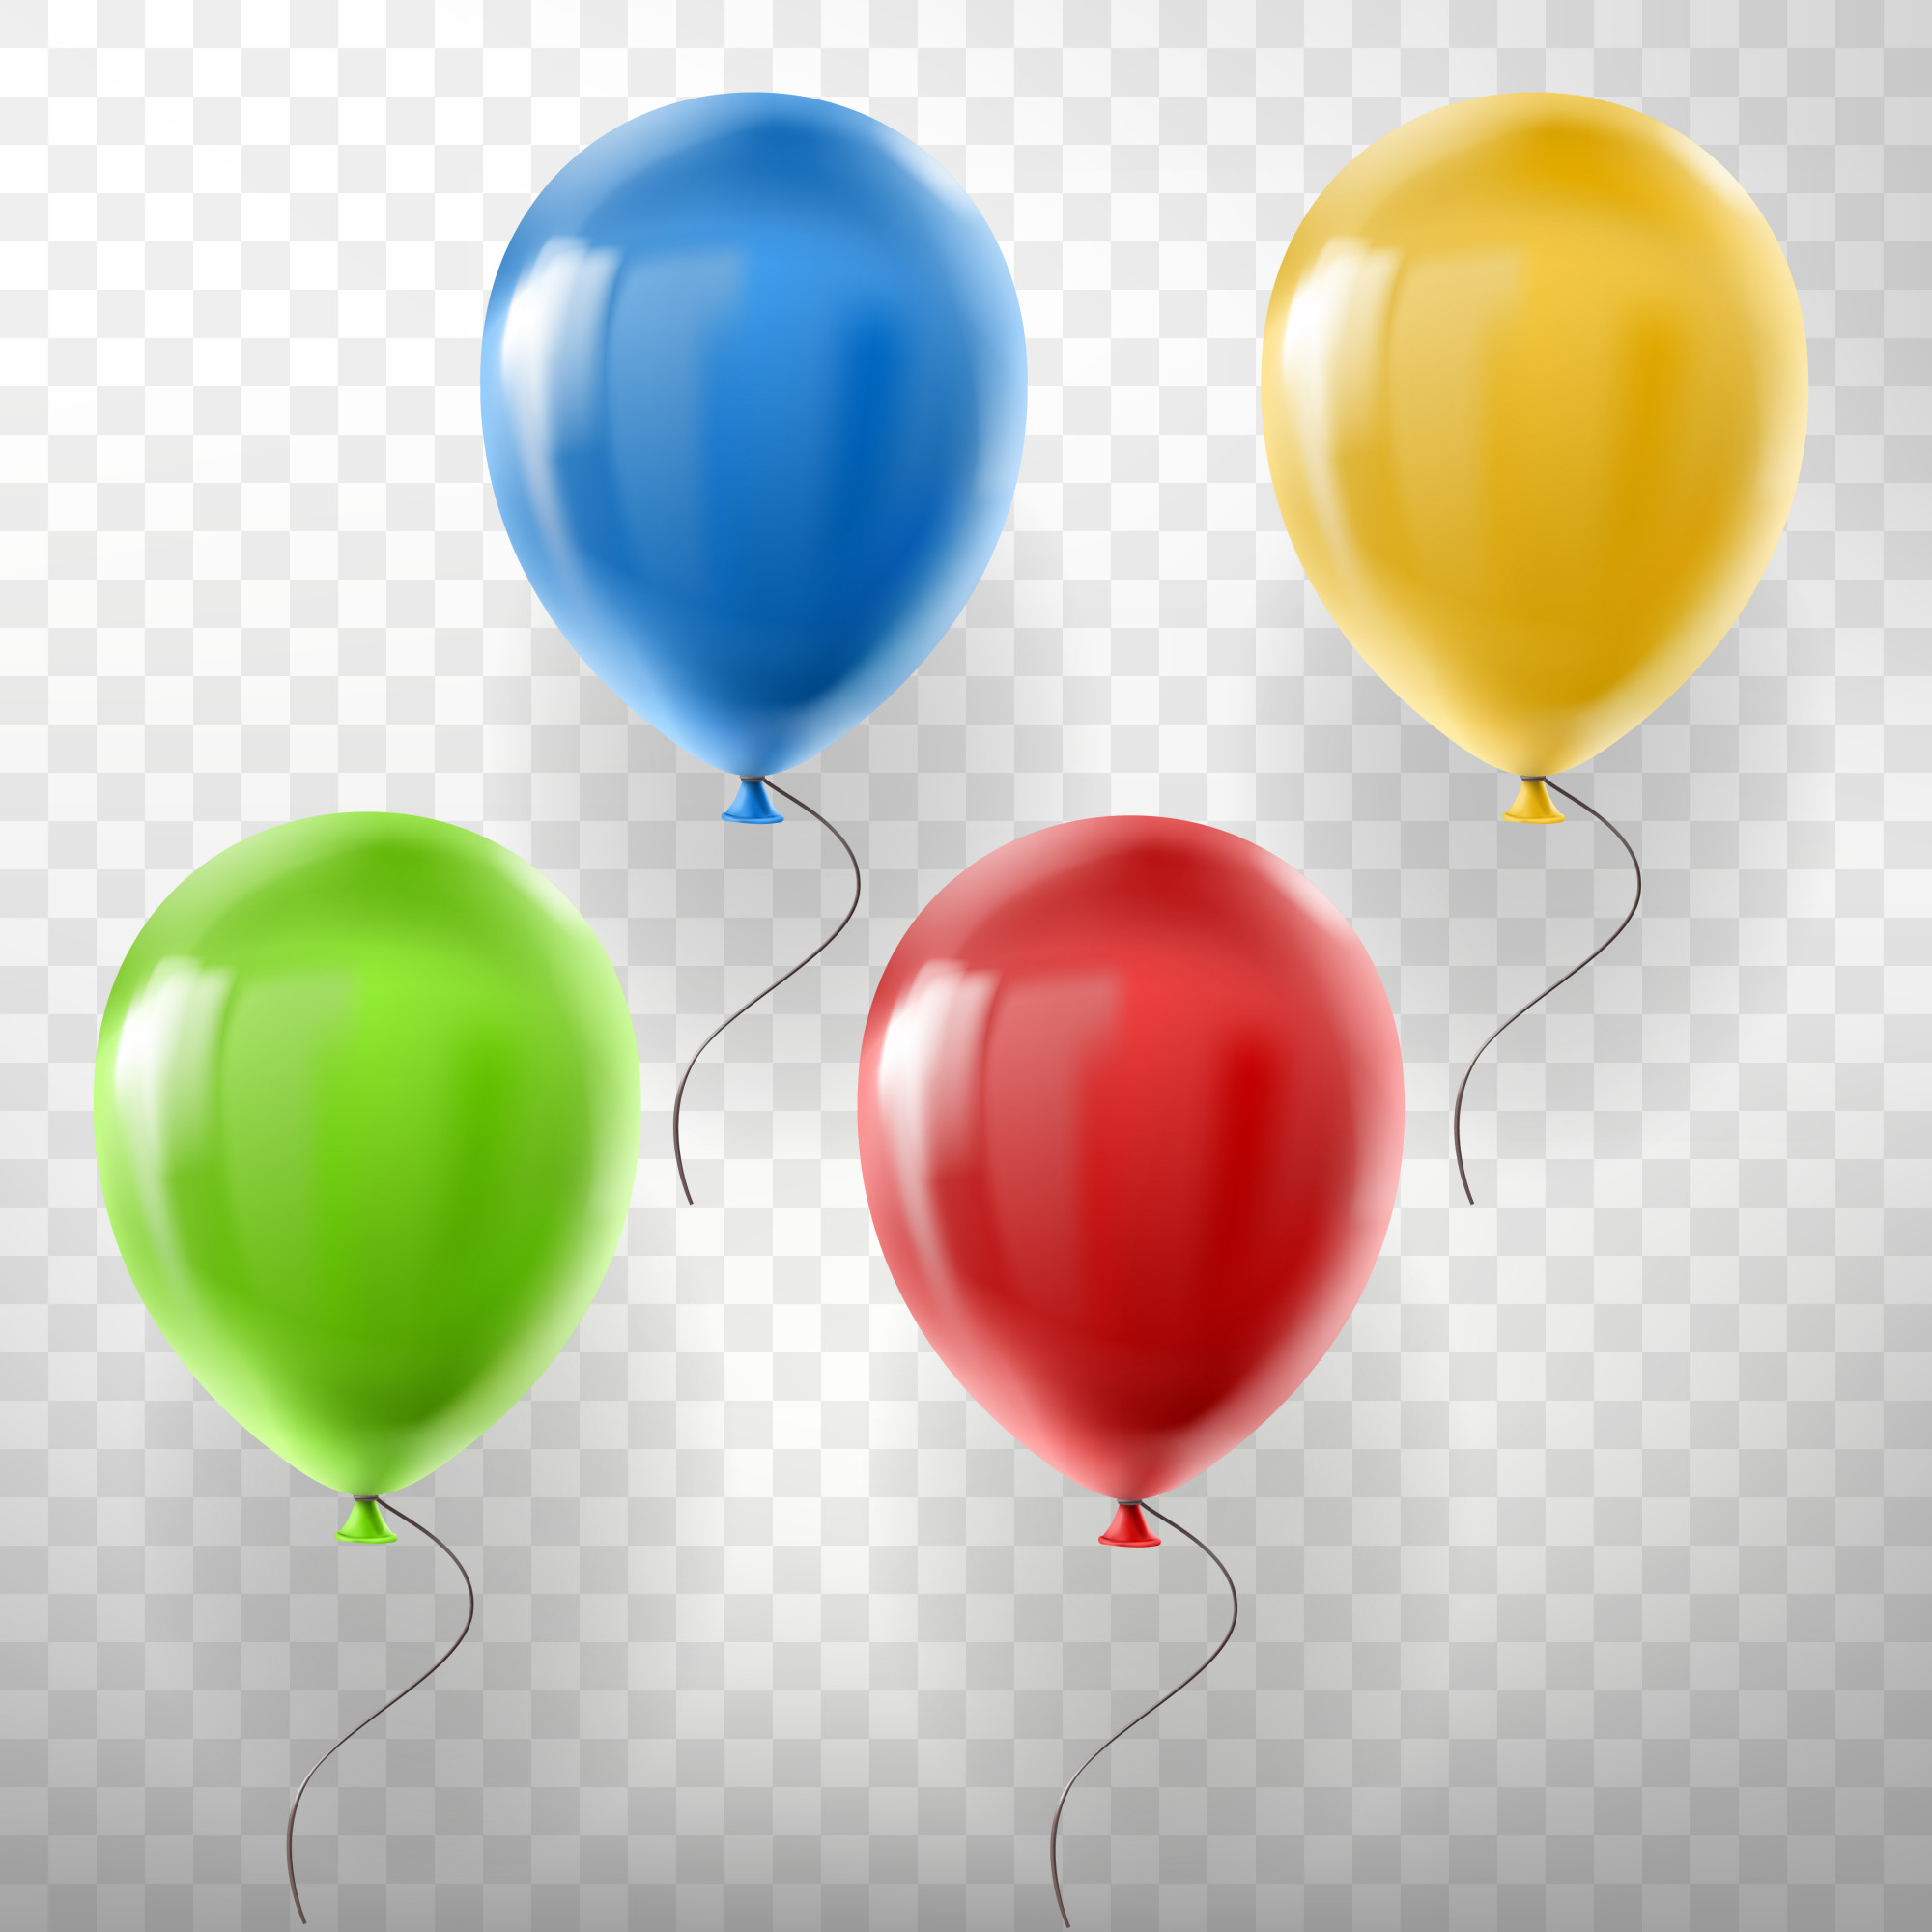 Set of realistic flying helium balloons, multicolored, red, yellow, green and blue